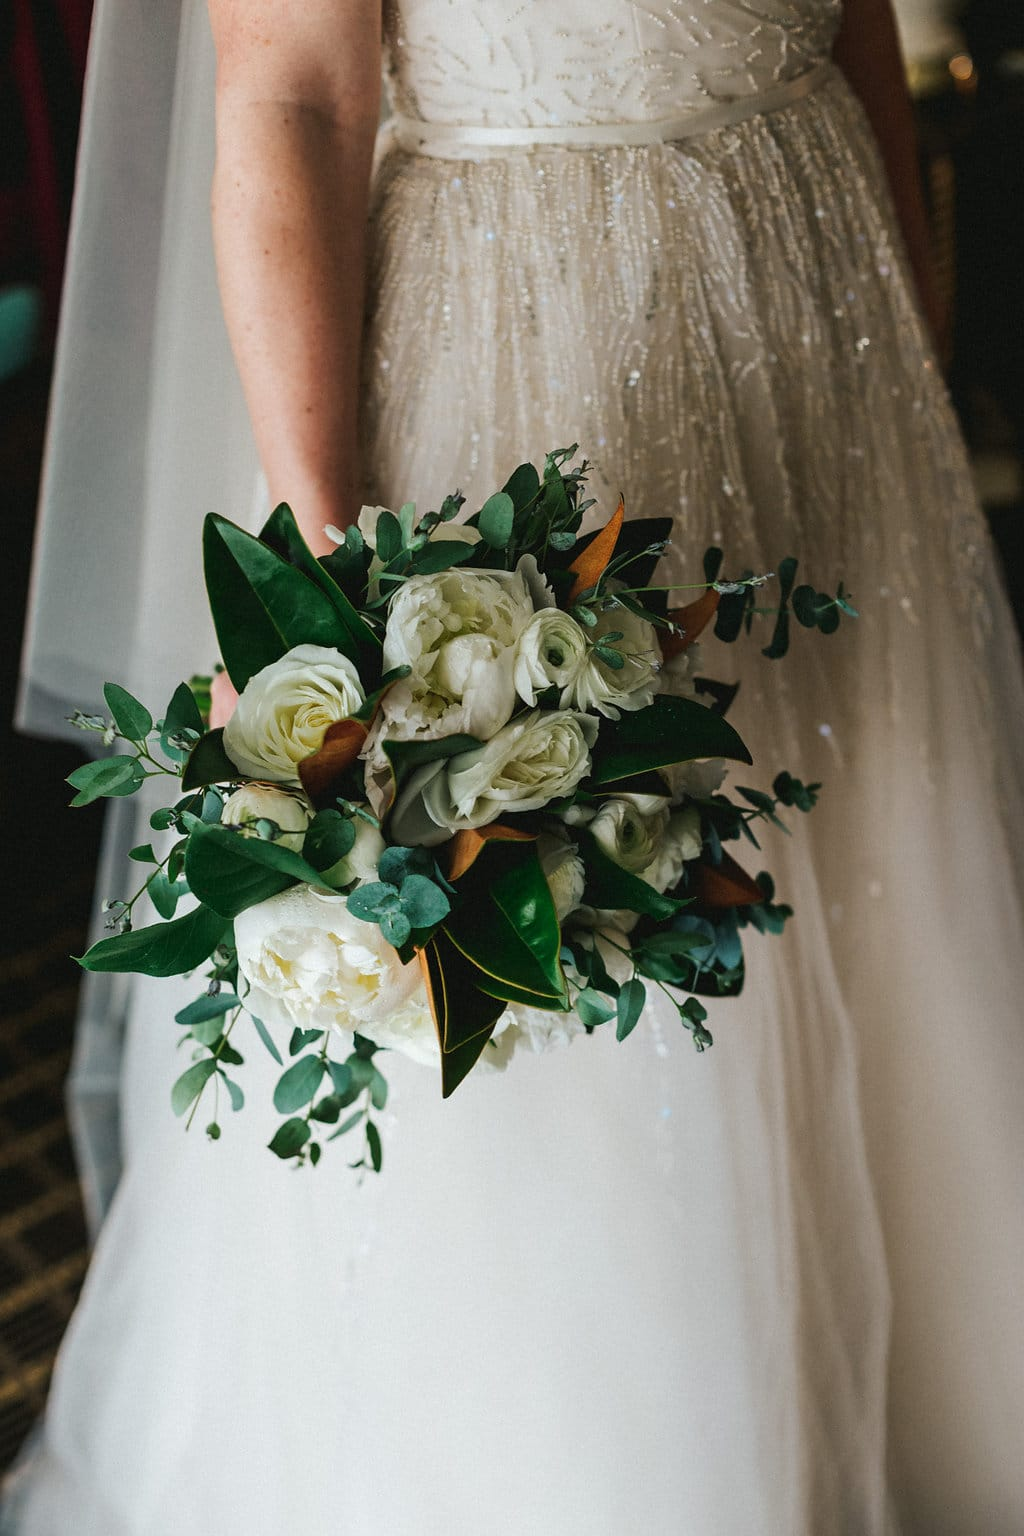 bride holding simple white and green bouquet